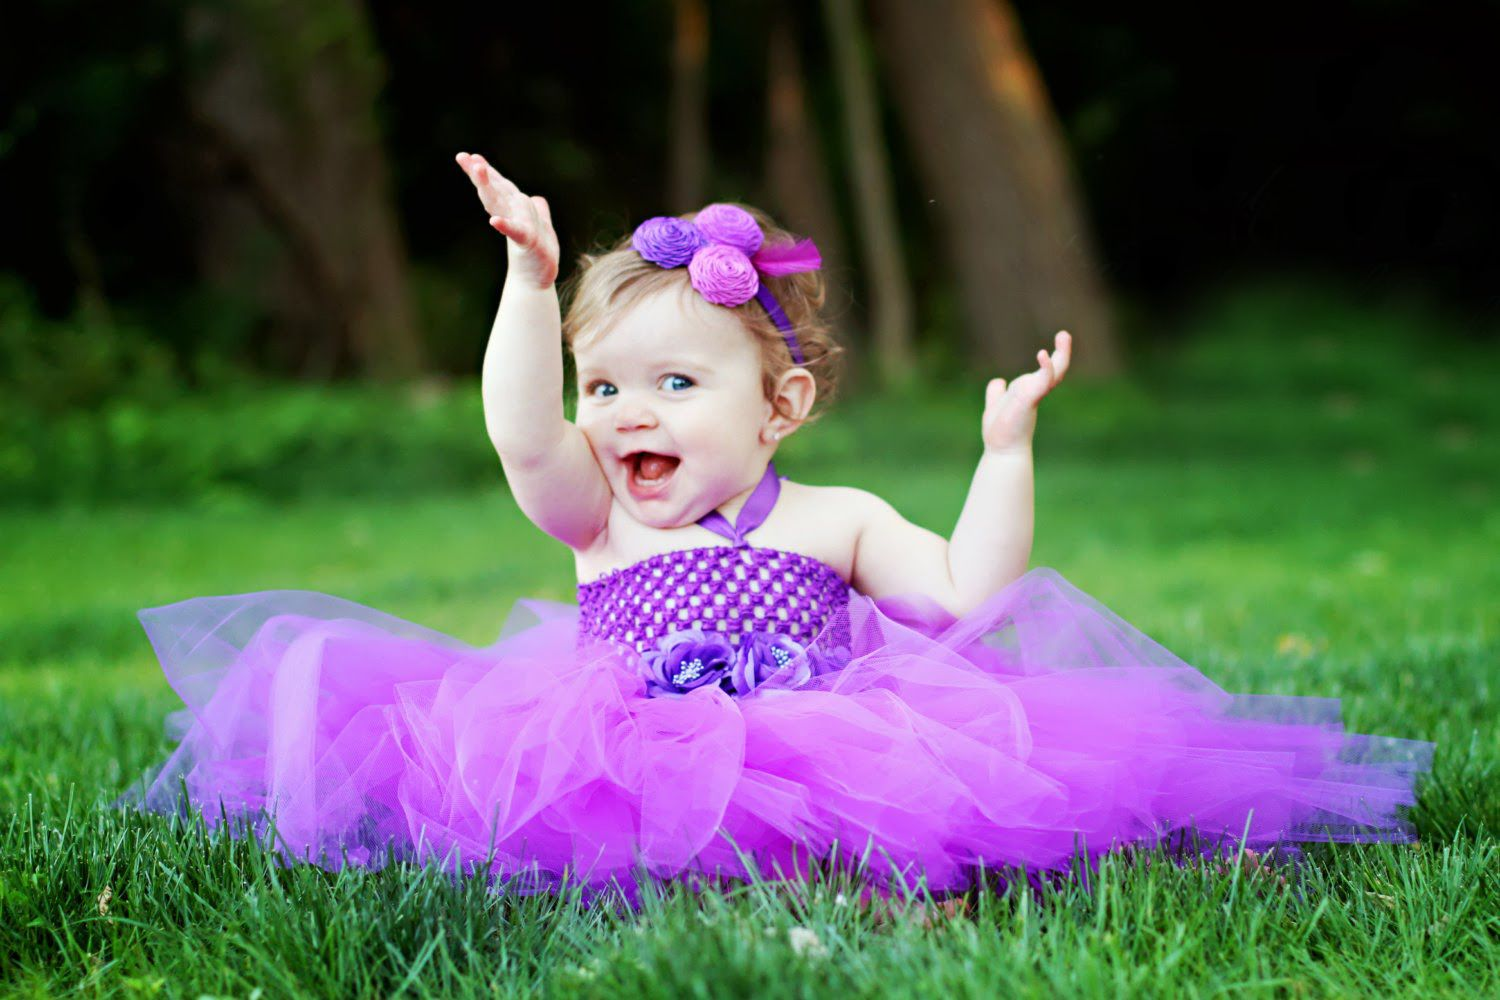 Cute Baby Smile Hd Wallpapers Pics Download Hd Walls 1500x1000